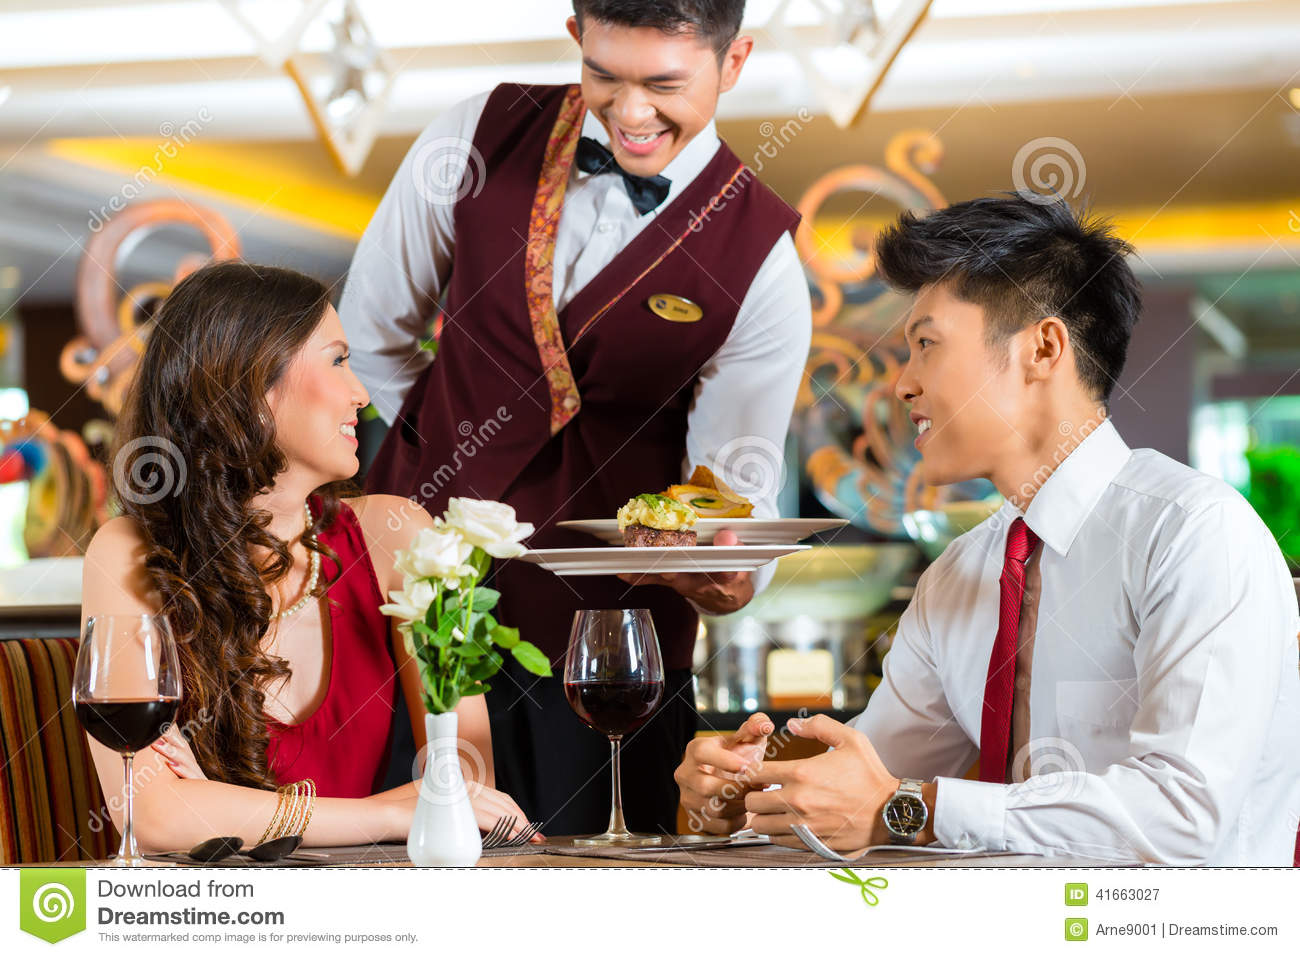 Related to Romantic dinner Stock Photo Images. 23,403 Romantic dinner